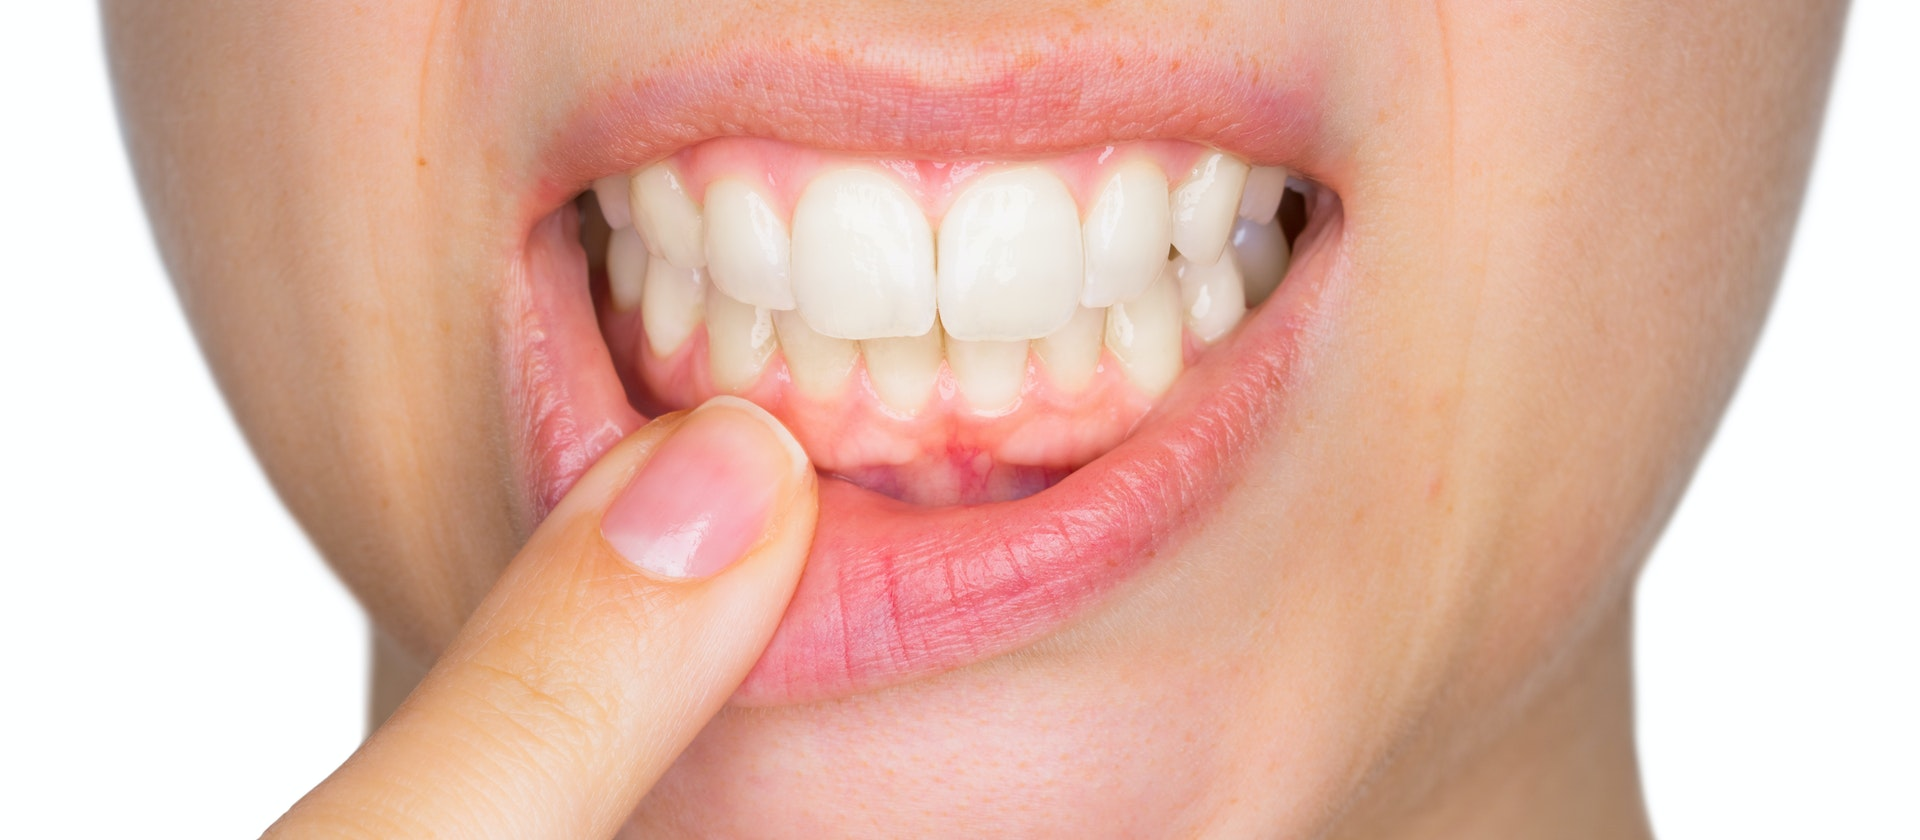 Proper diagnosis of tooth sensitivity is important for proper treatment